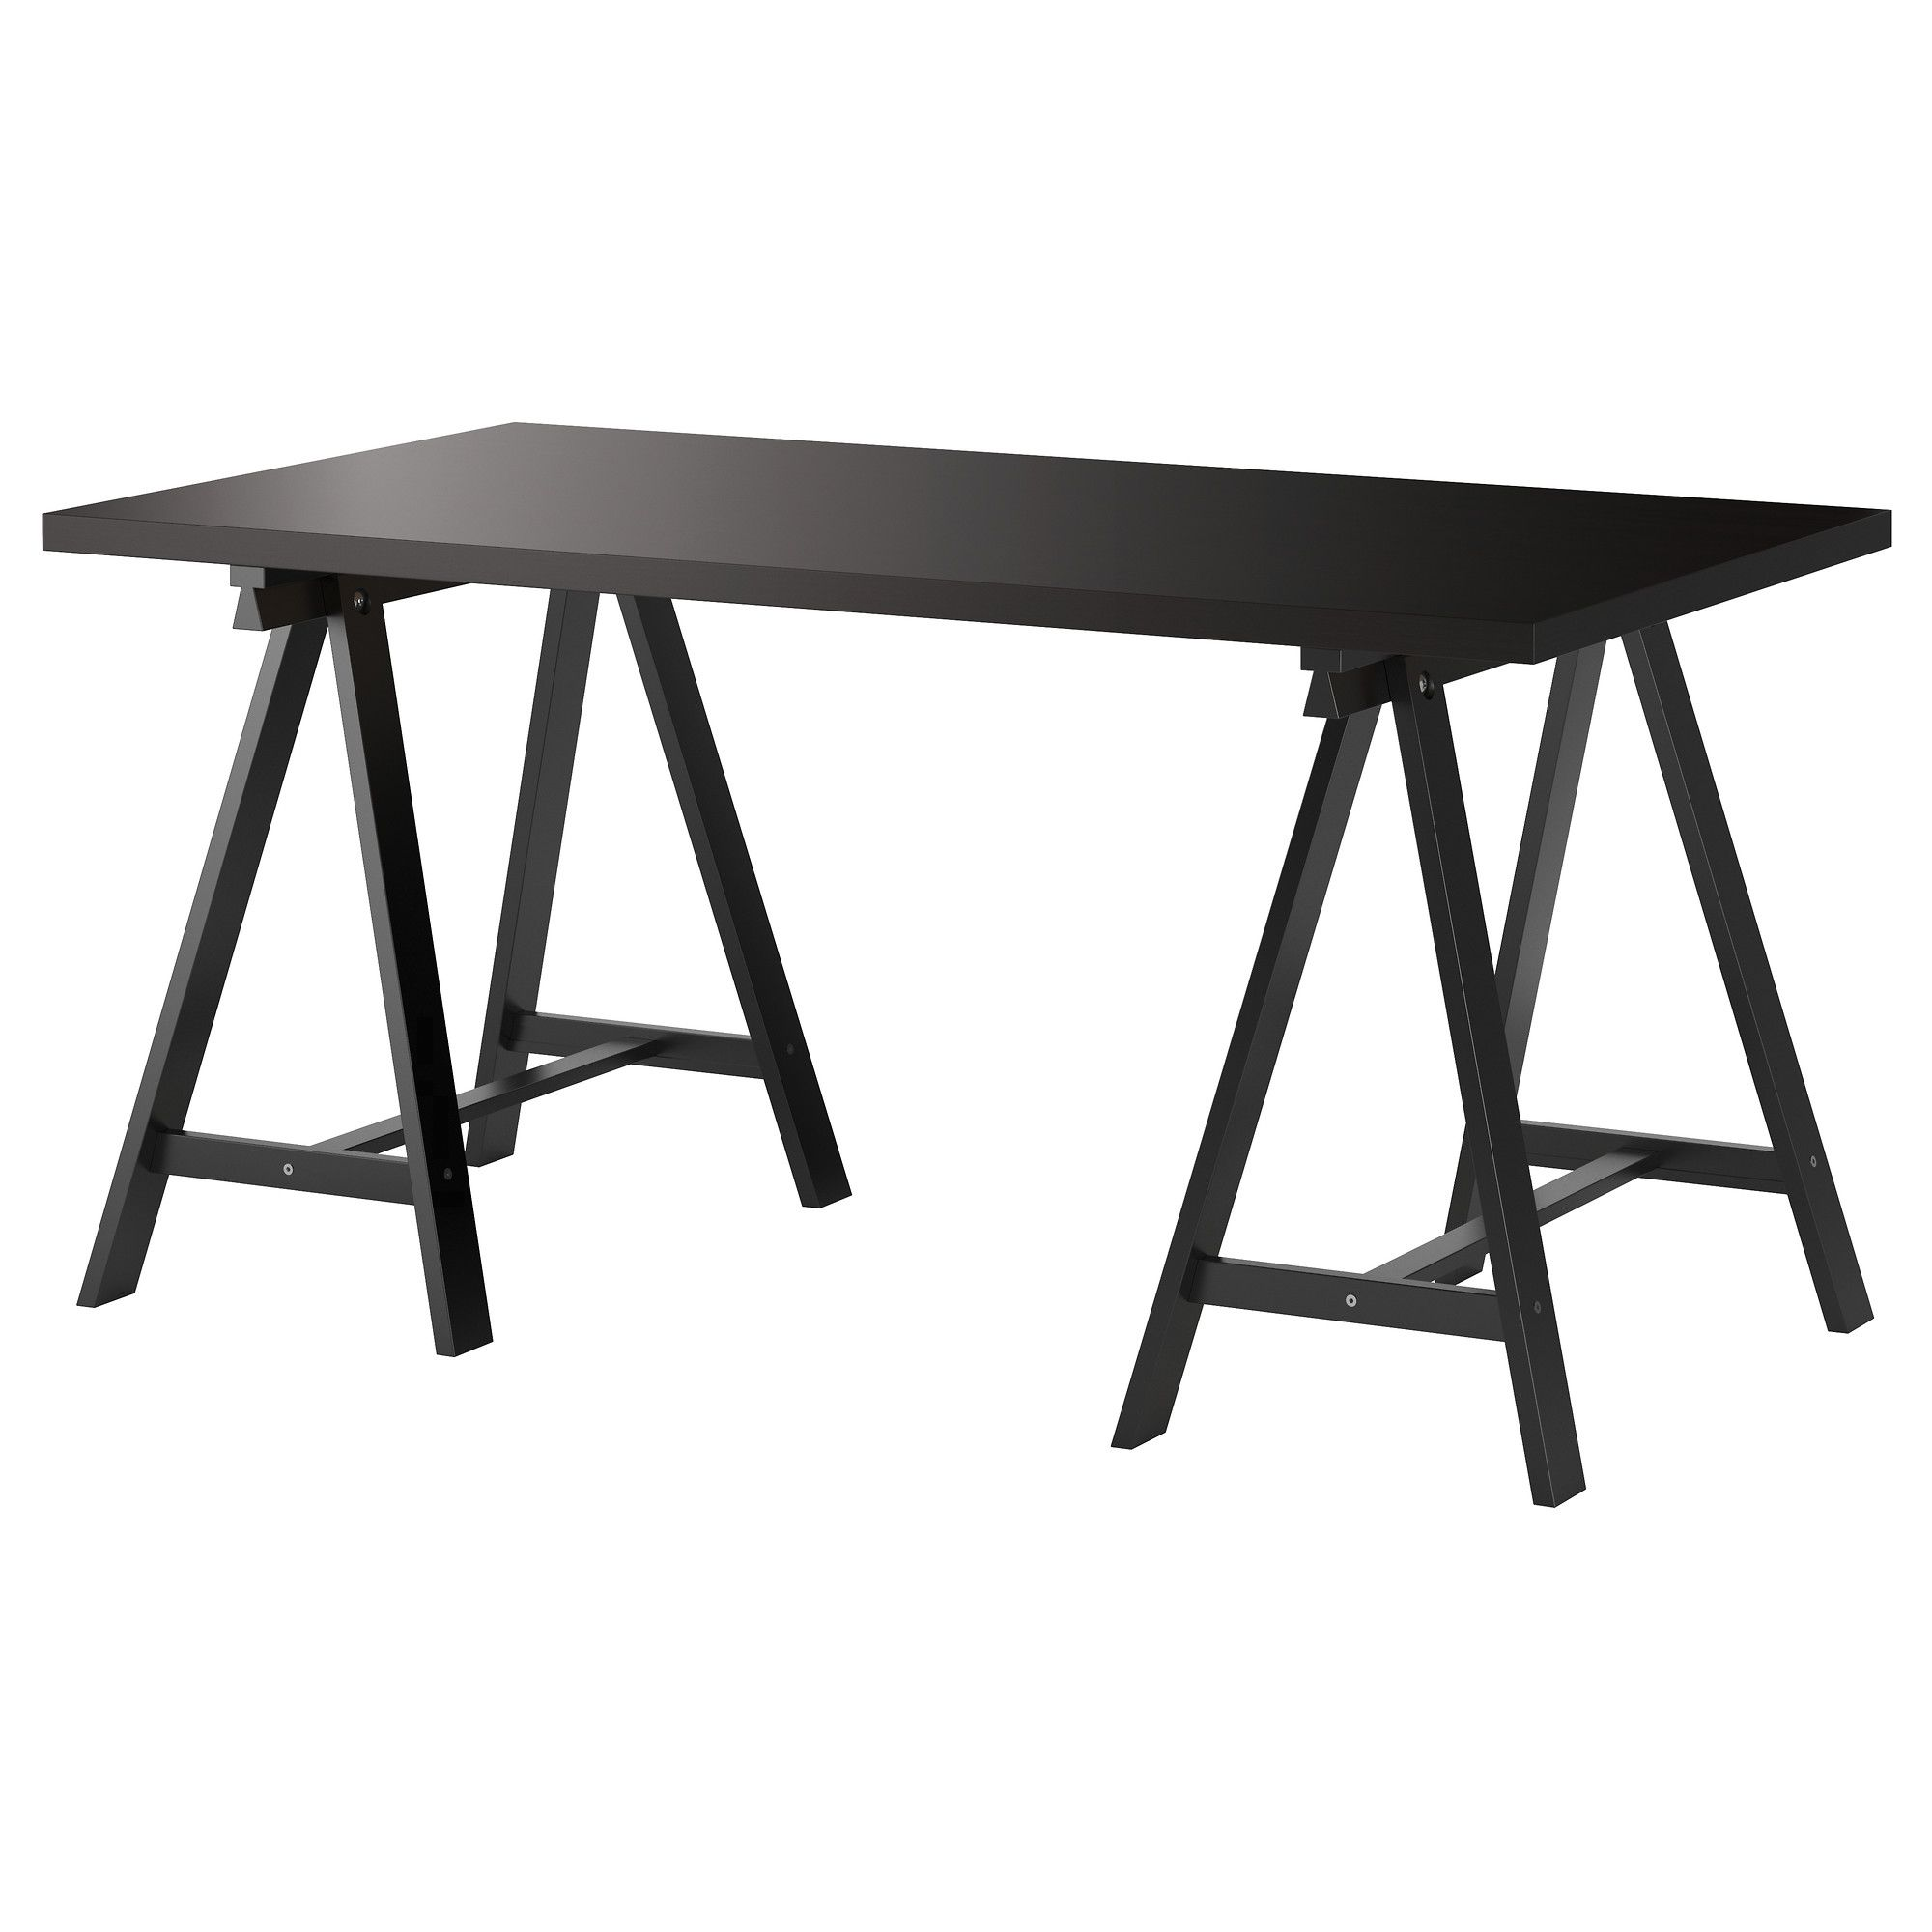 black furniture ikea. linnmon oddvald table blackbrown black furniture ikea